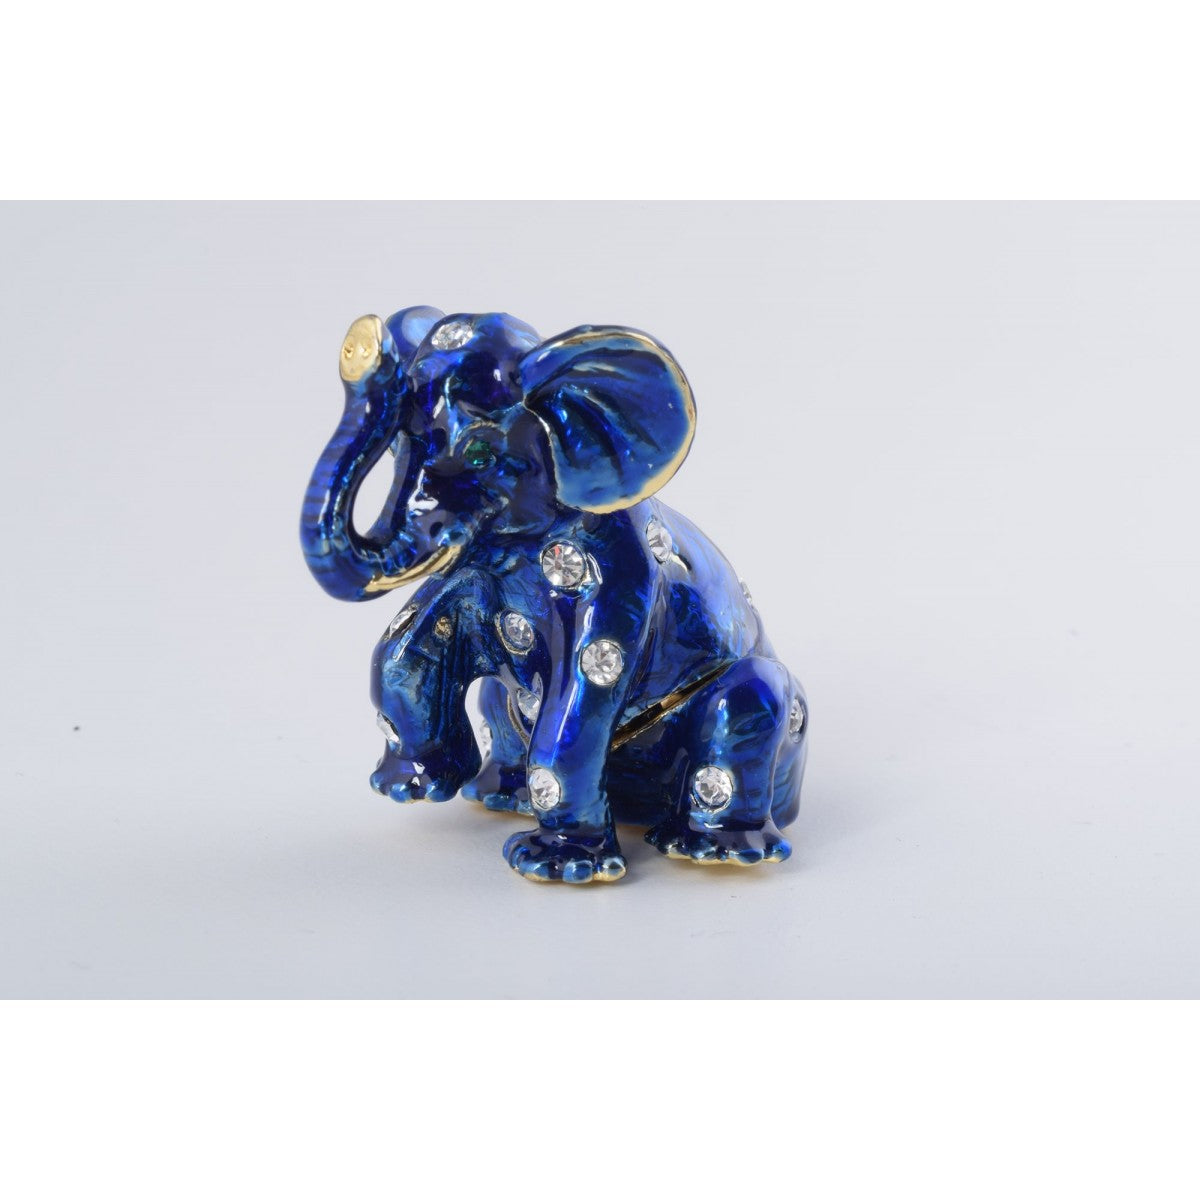 Sitting Blue Elephant Trinket Box by Keren Kopal